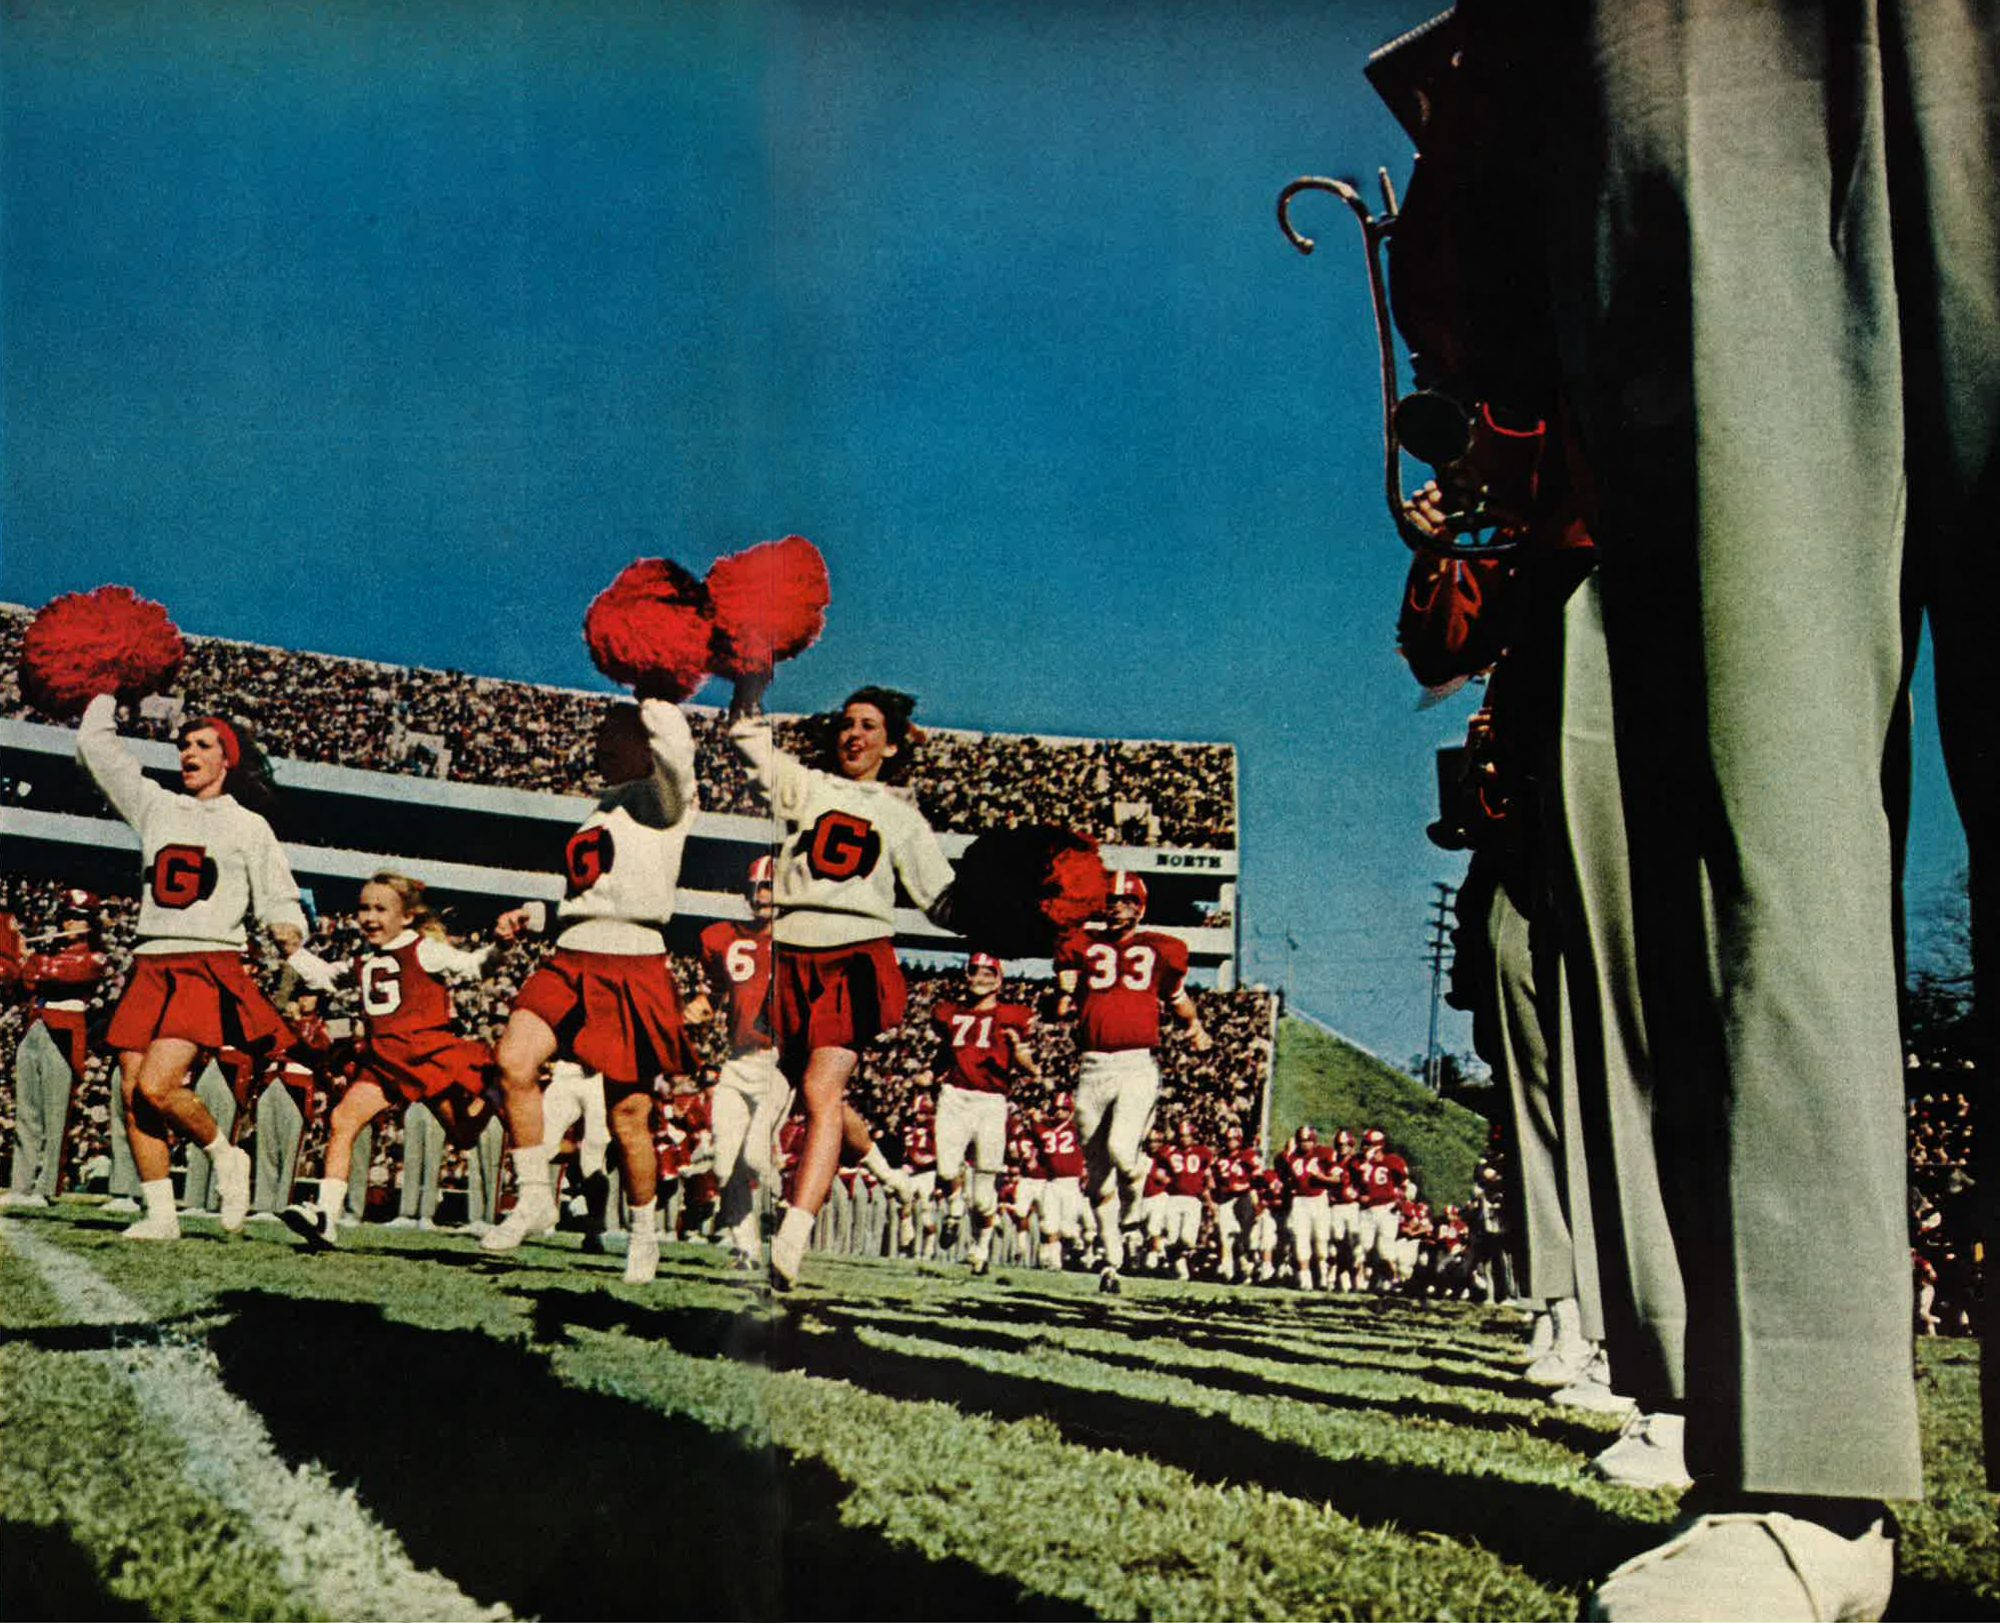 UGA Cheerleaders Running on Field